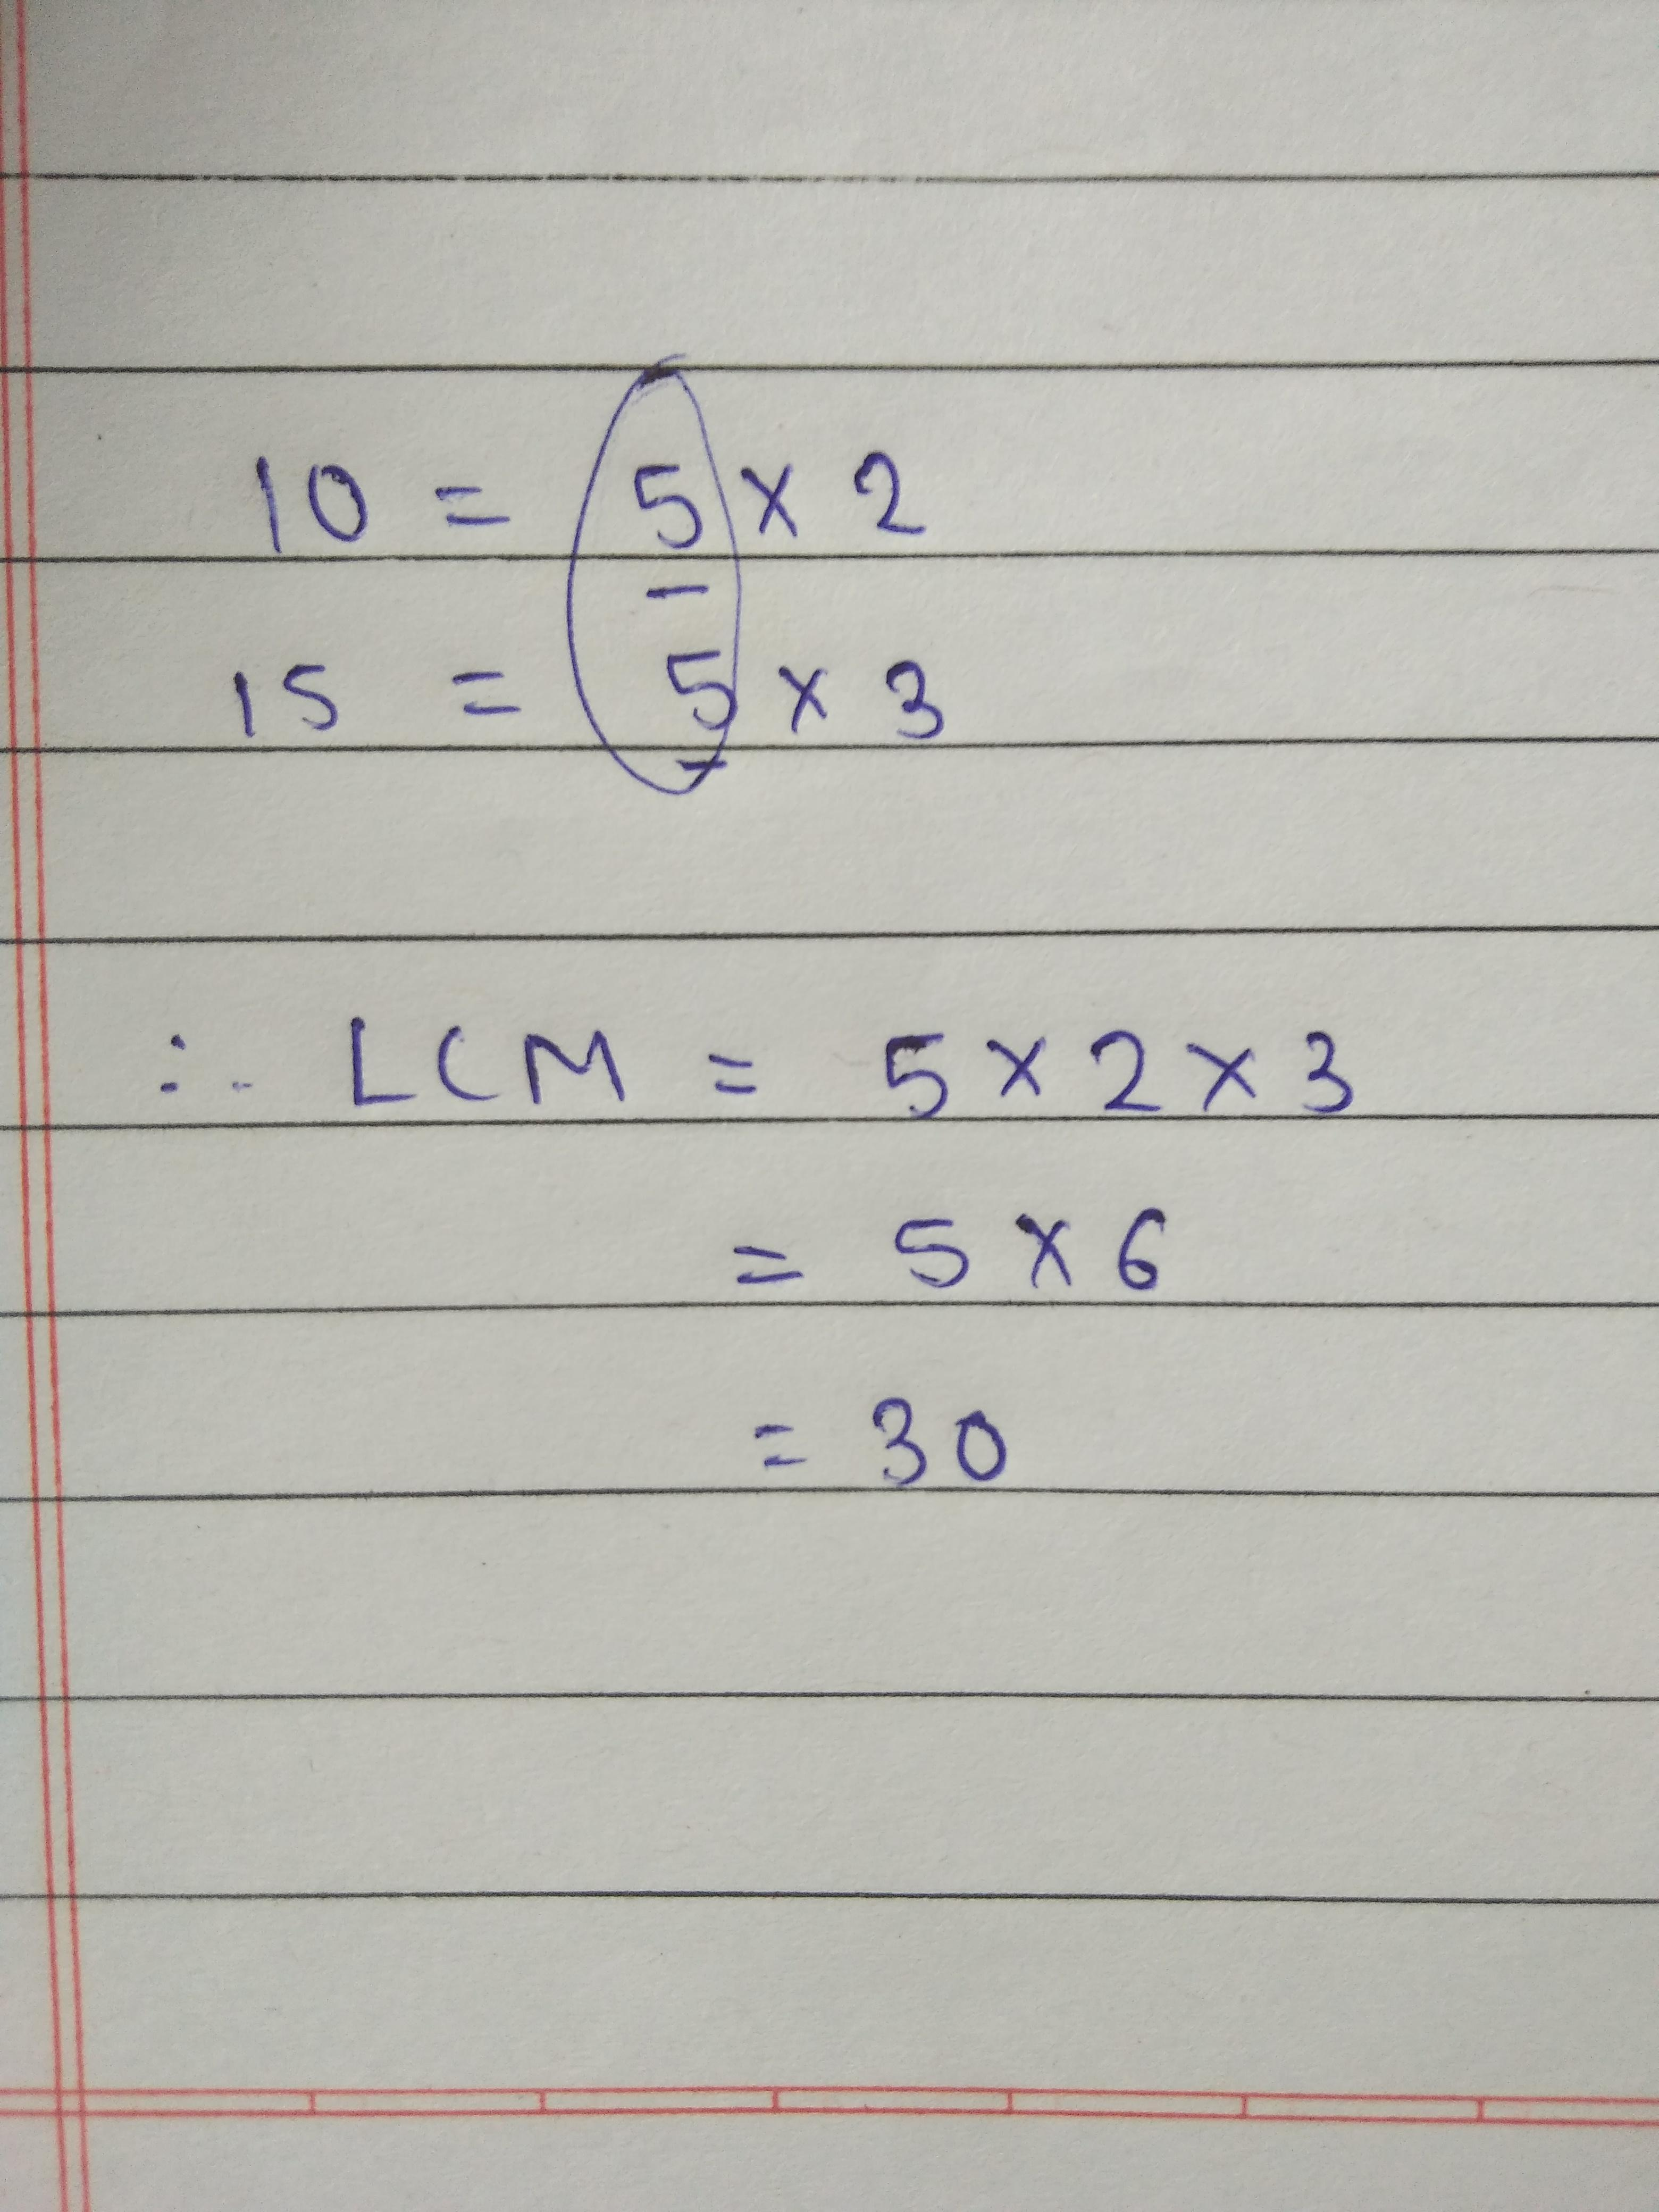 Lcm Of 10 And 15 Using Prime Factorization Method